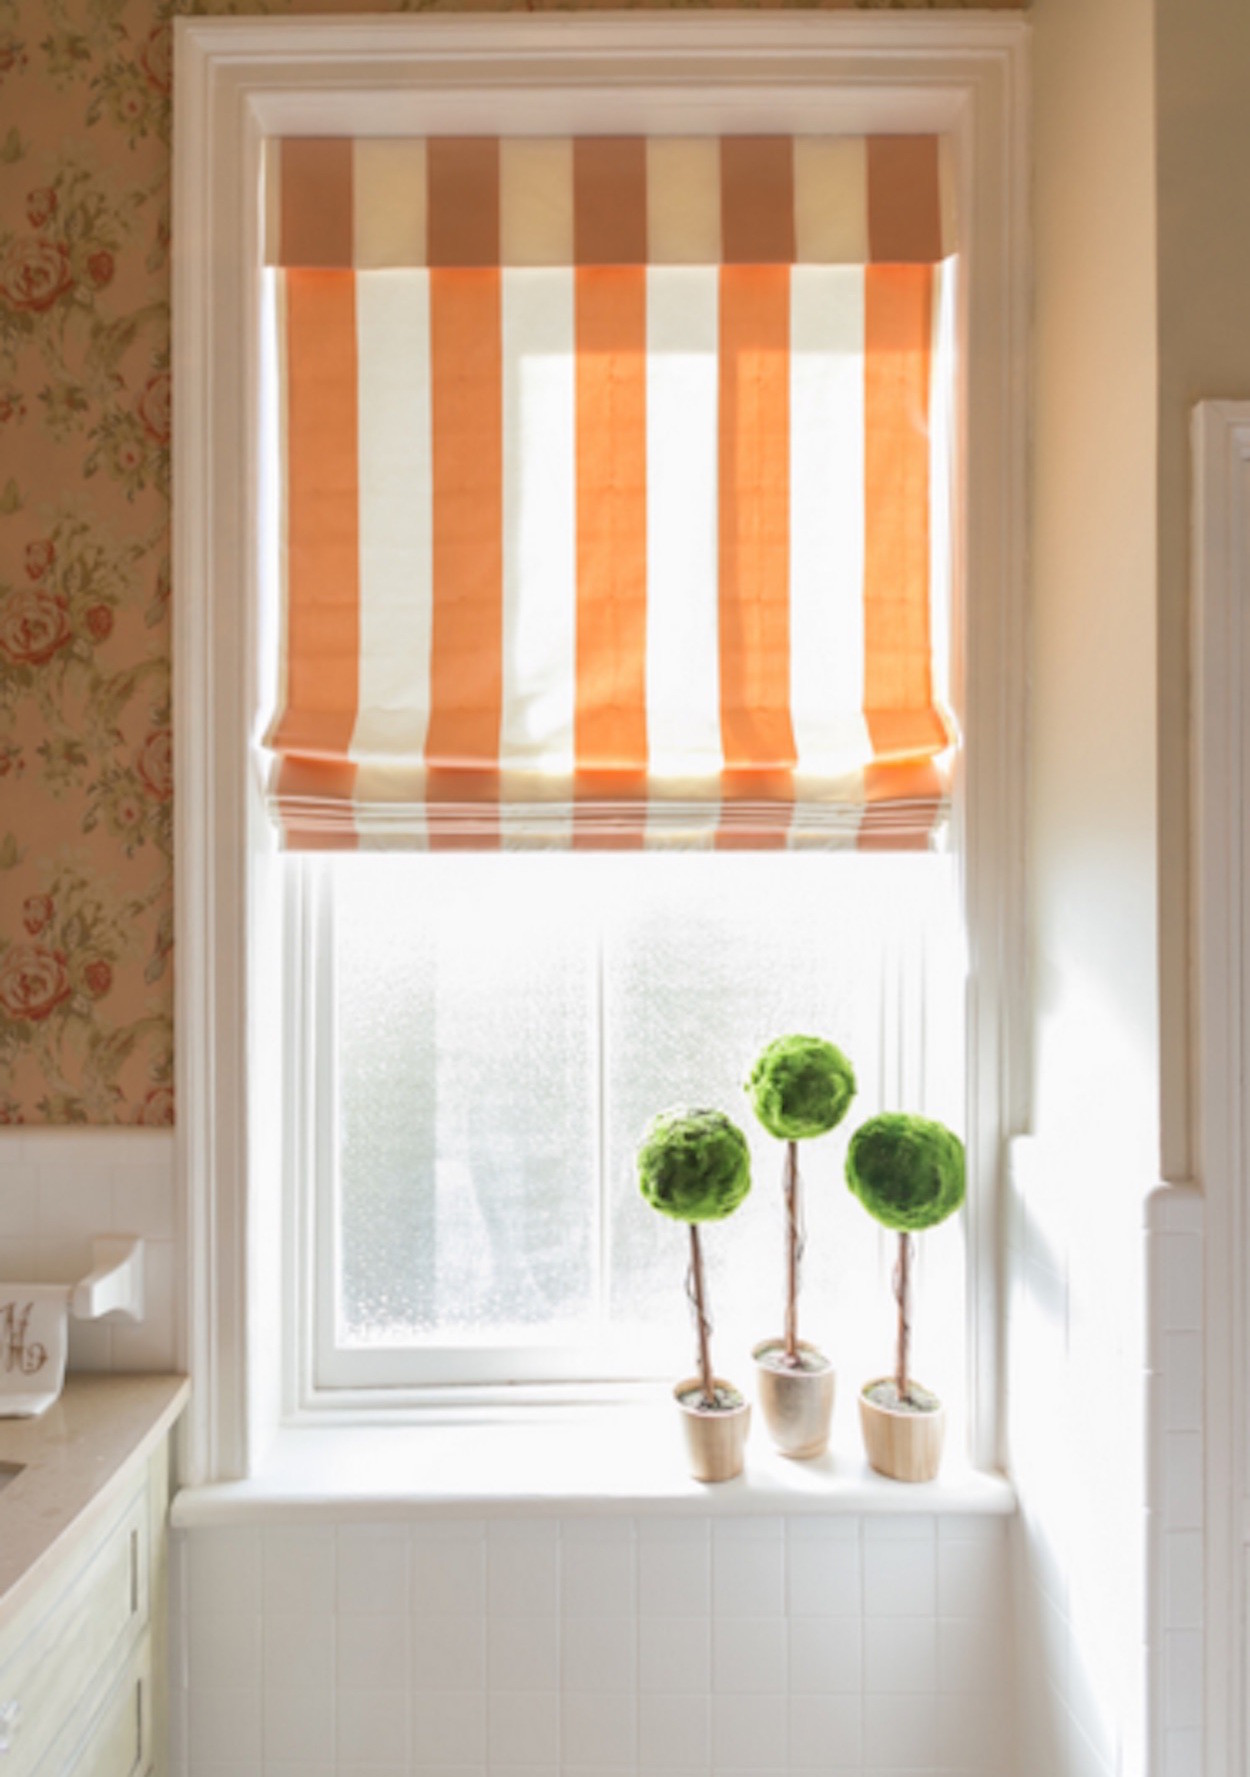 Exceptionnel 7 Different Bathroom Window Treatments You Might Not Have Thought Of |  Martha Stewart